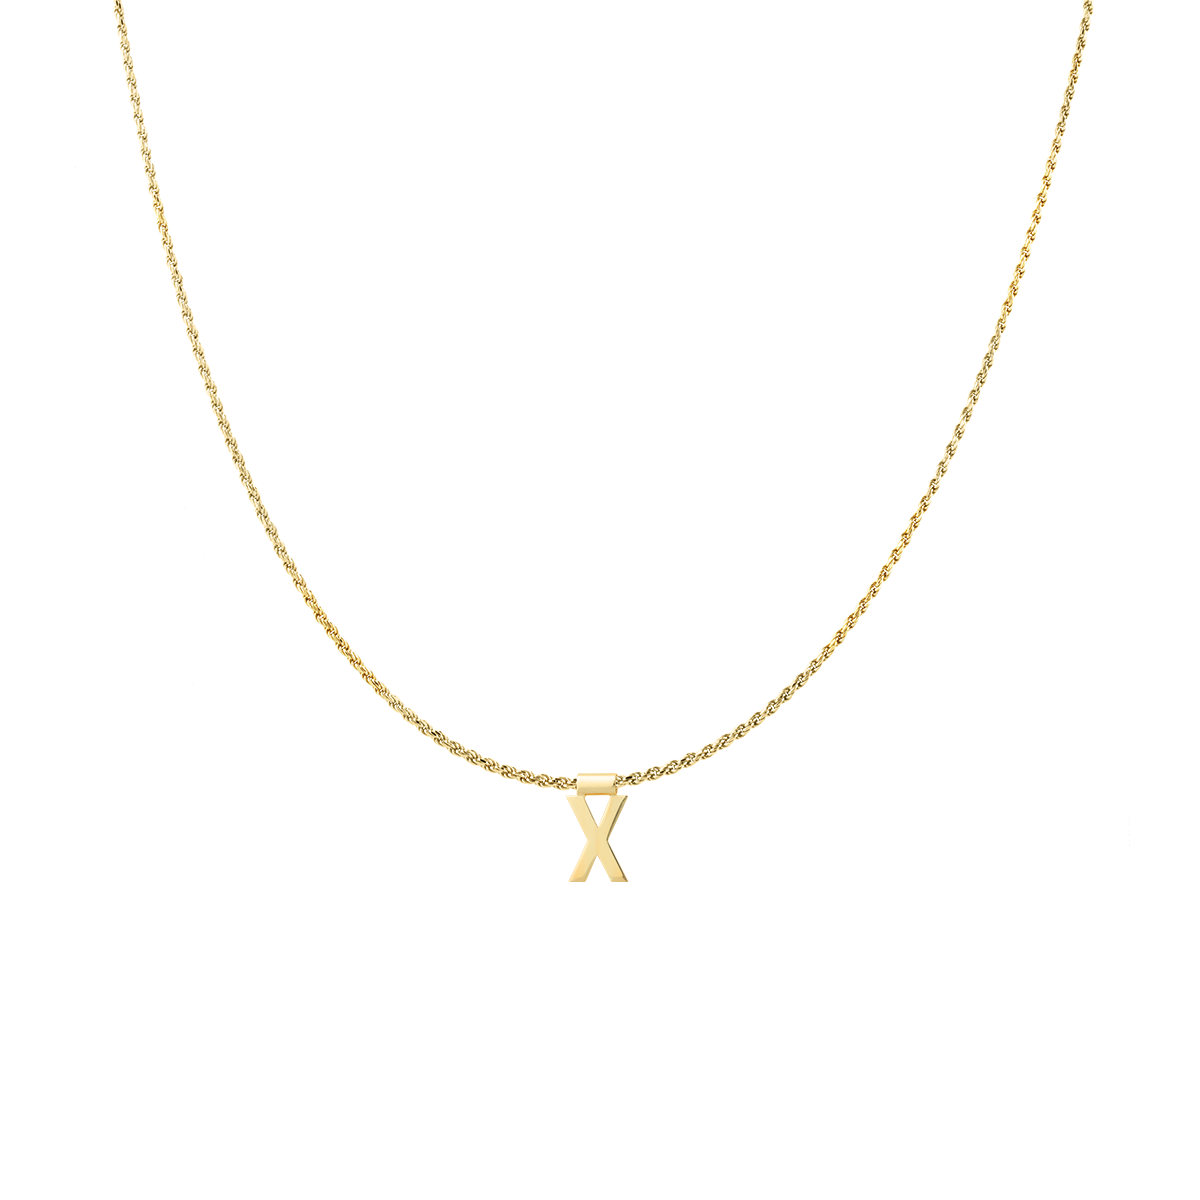 Ruby Rope Letter Necklace gold X